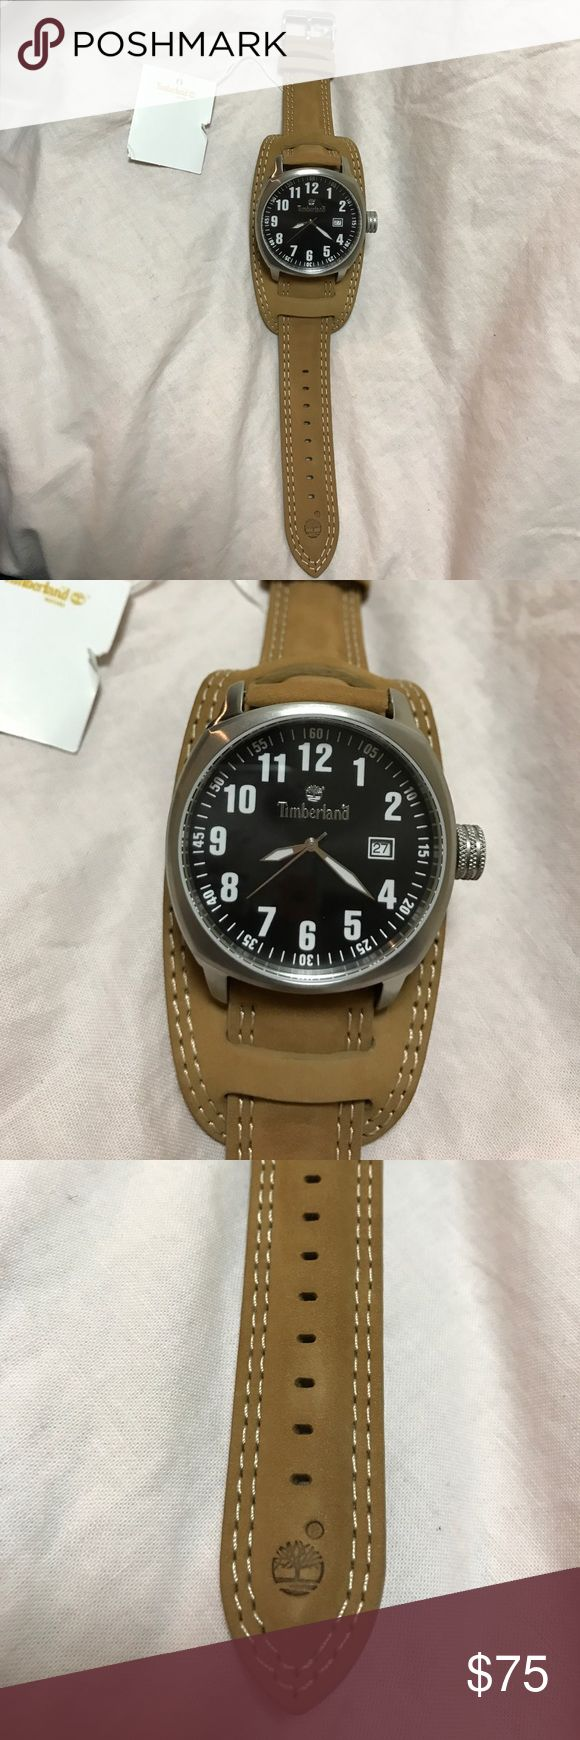 Men's Timberland Watch Brown Timberland Watch, never worn! Comes with box, battery needs to be changed. Timberland Accessories Watches